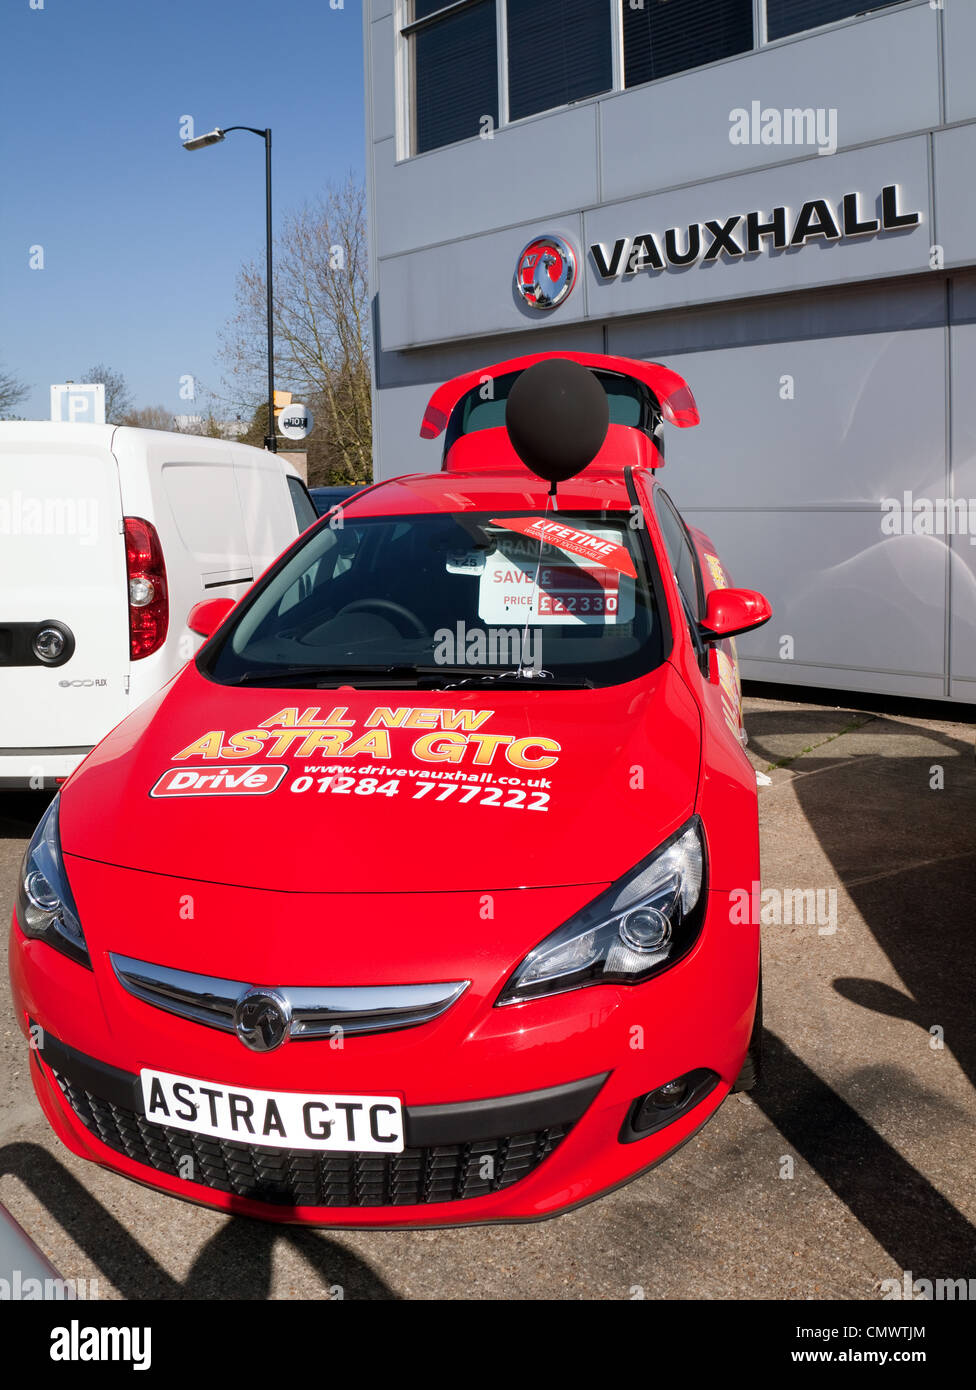 New Vauxhall car for sale in a dealership, Bury St Edmunds Suffolk UK - Stock Image